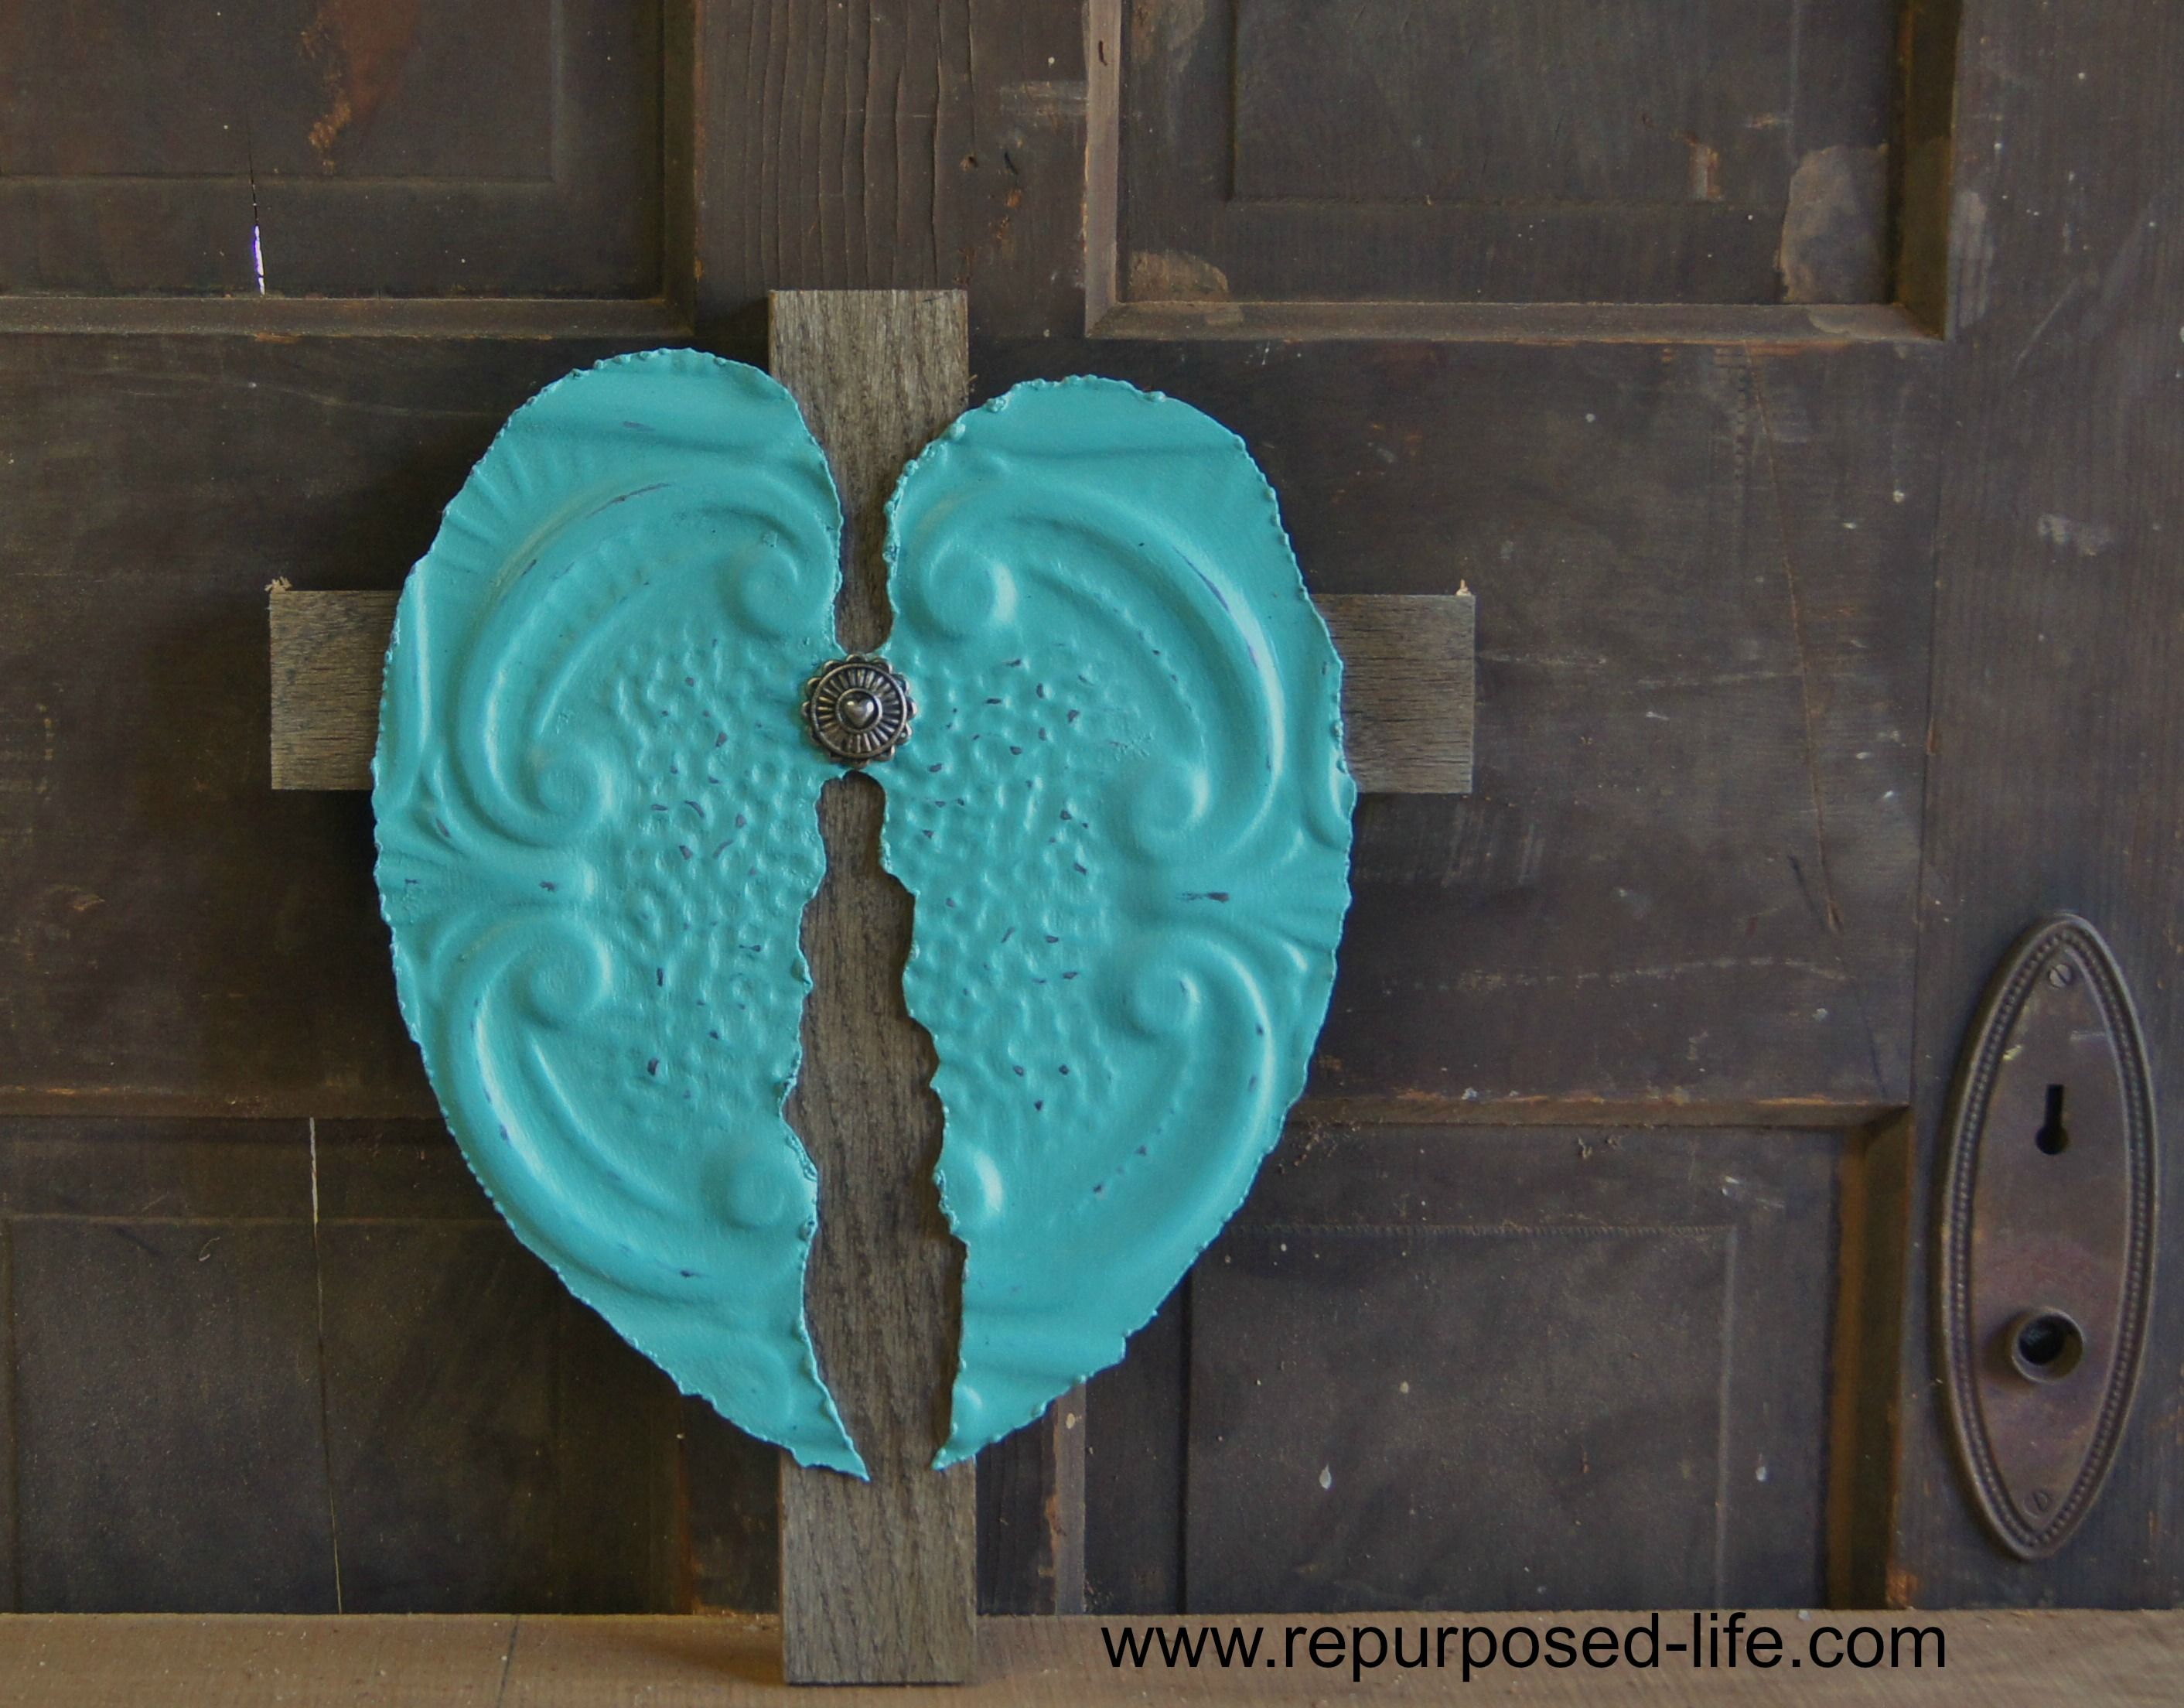 Turquoise angel wingscross made from antique ceiling tile oak turquoise angel wingscross made from antique ceiling tile dailygadgetfo Gallery